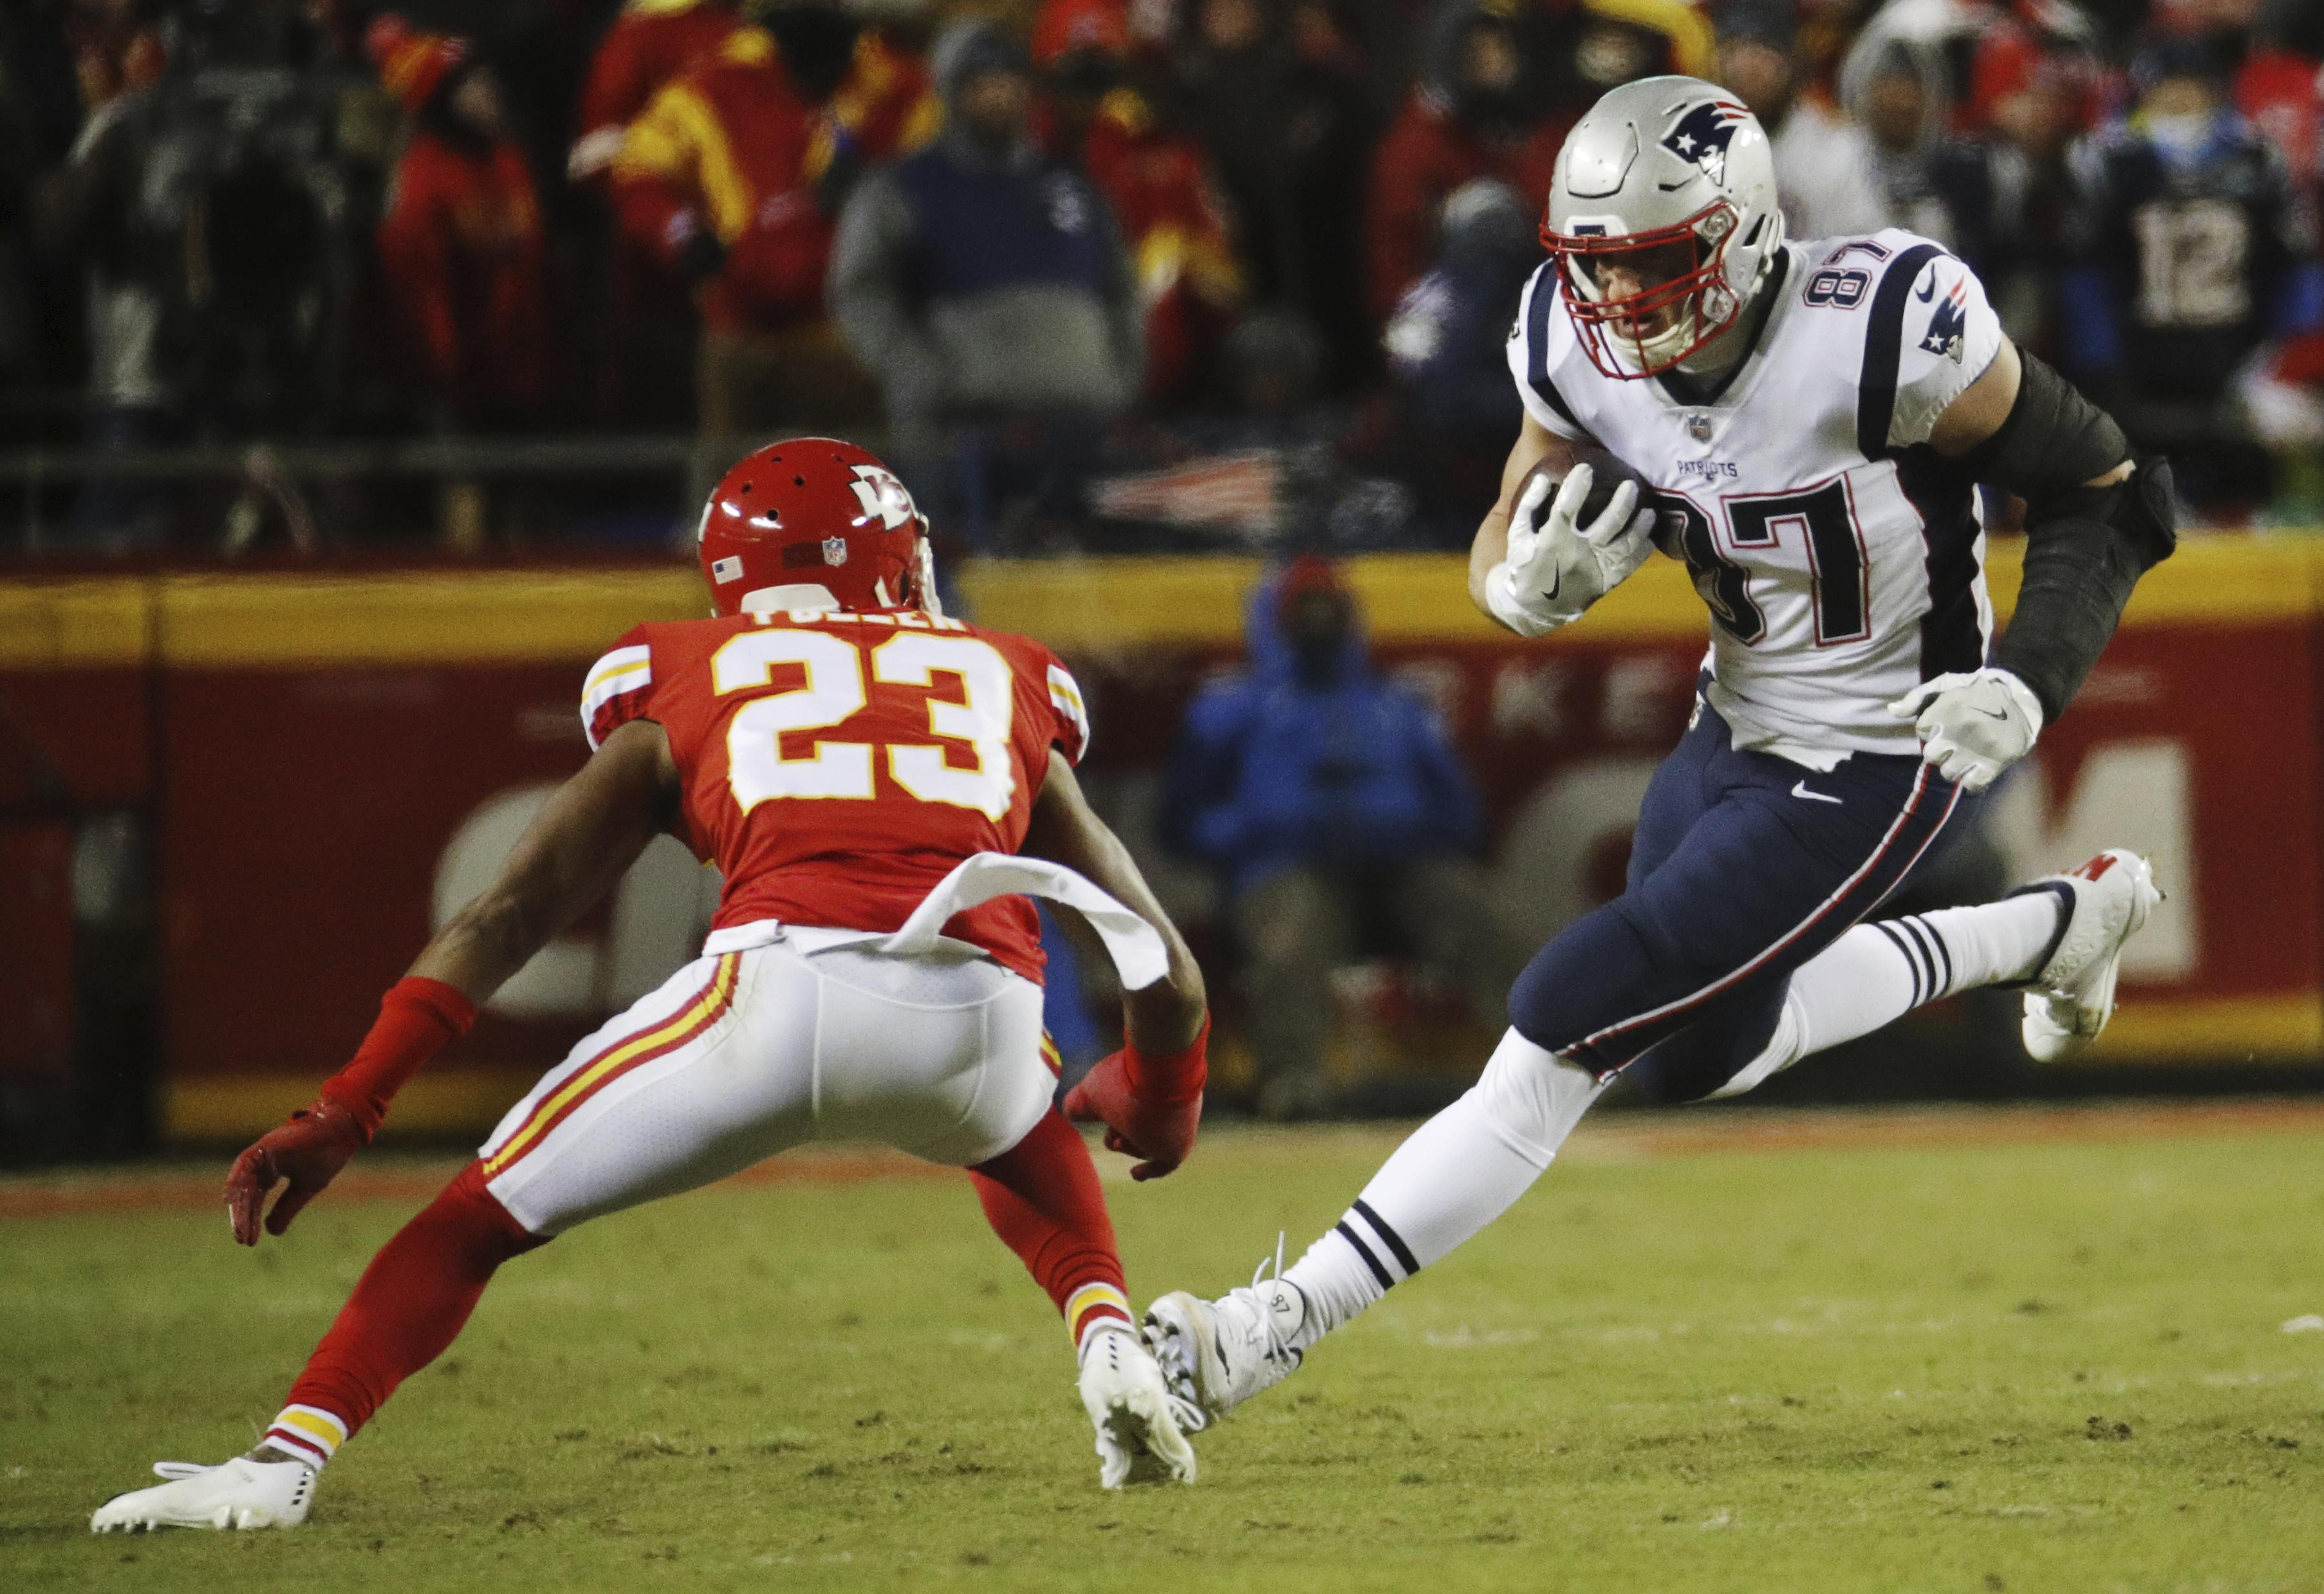 d37a71233e2 New England Patriots tight end Rob Gronkowski (87) runs against Kansas City  Chiefs cornerback